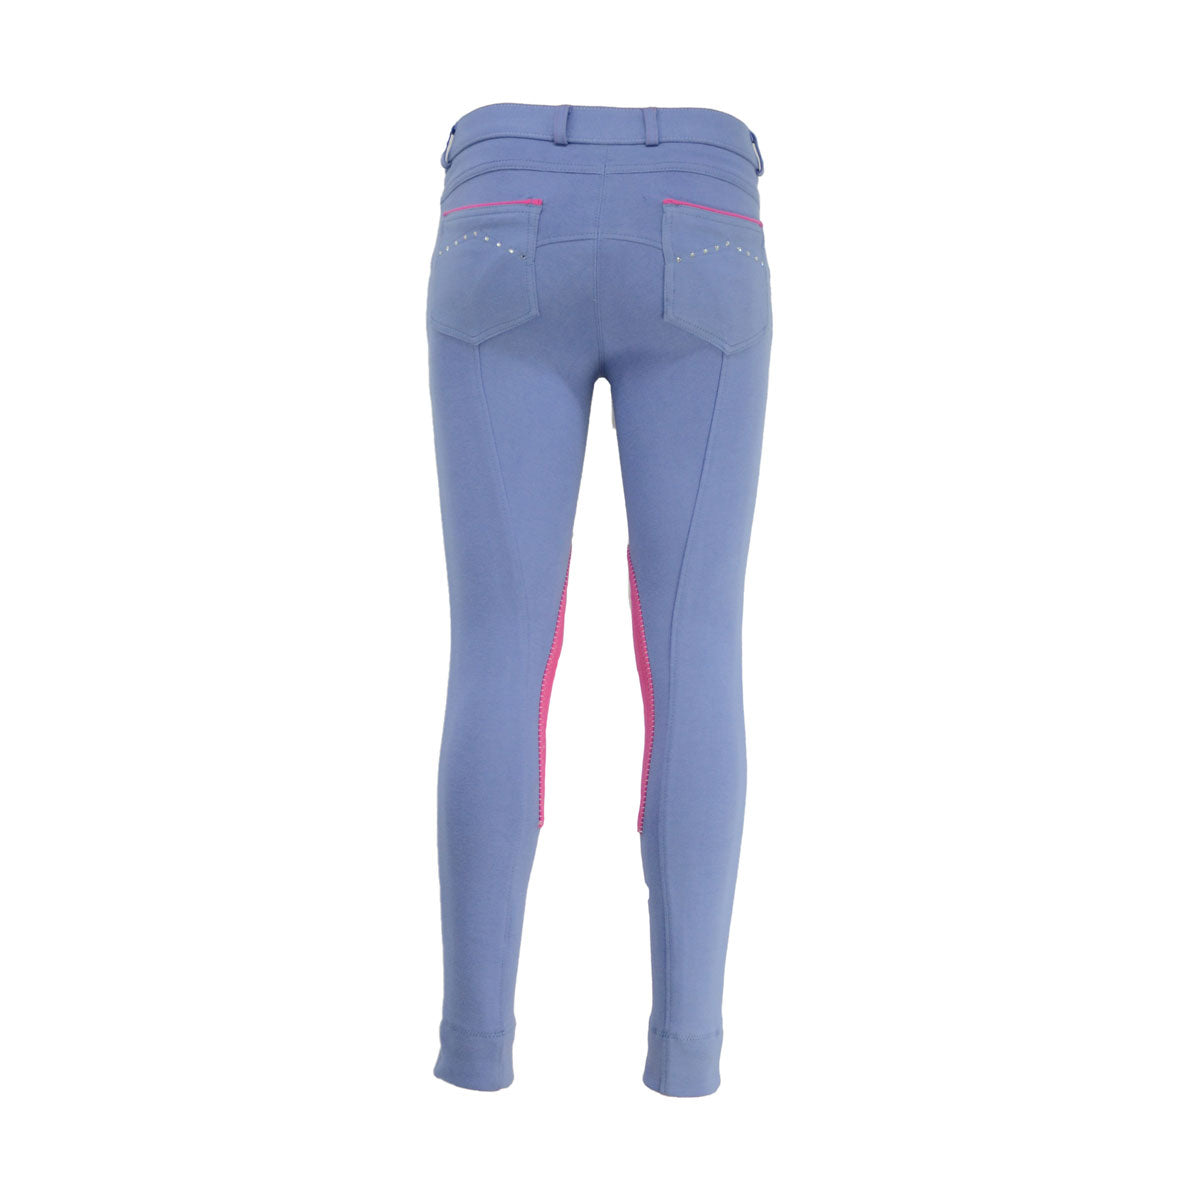 HyPERFORMANCE Darcy Diamante Mizs Jodhpurs